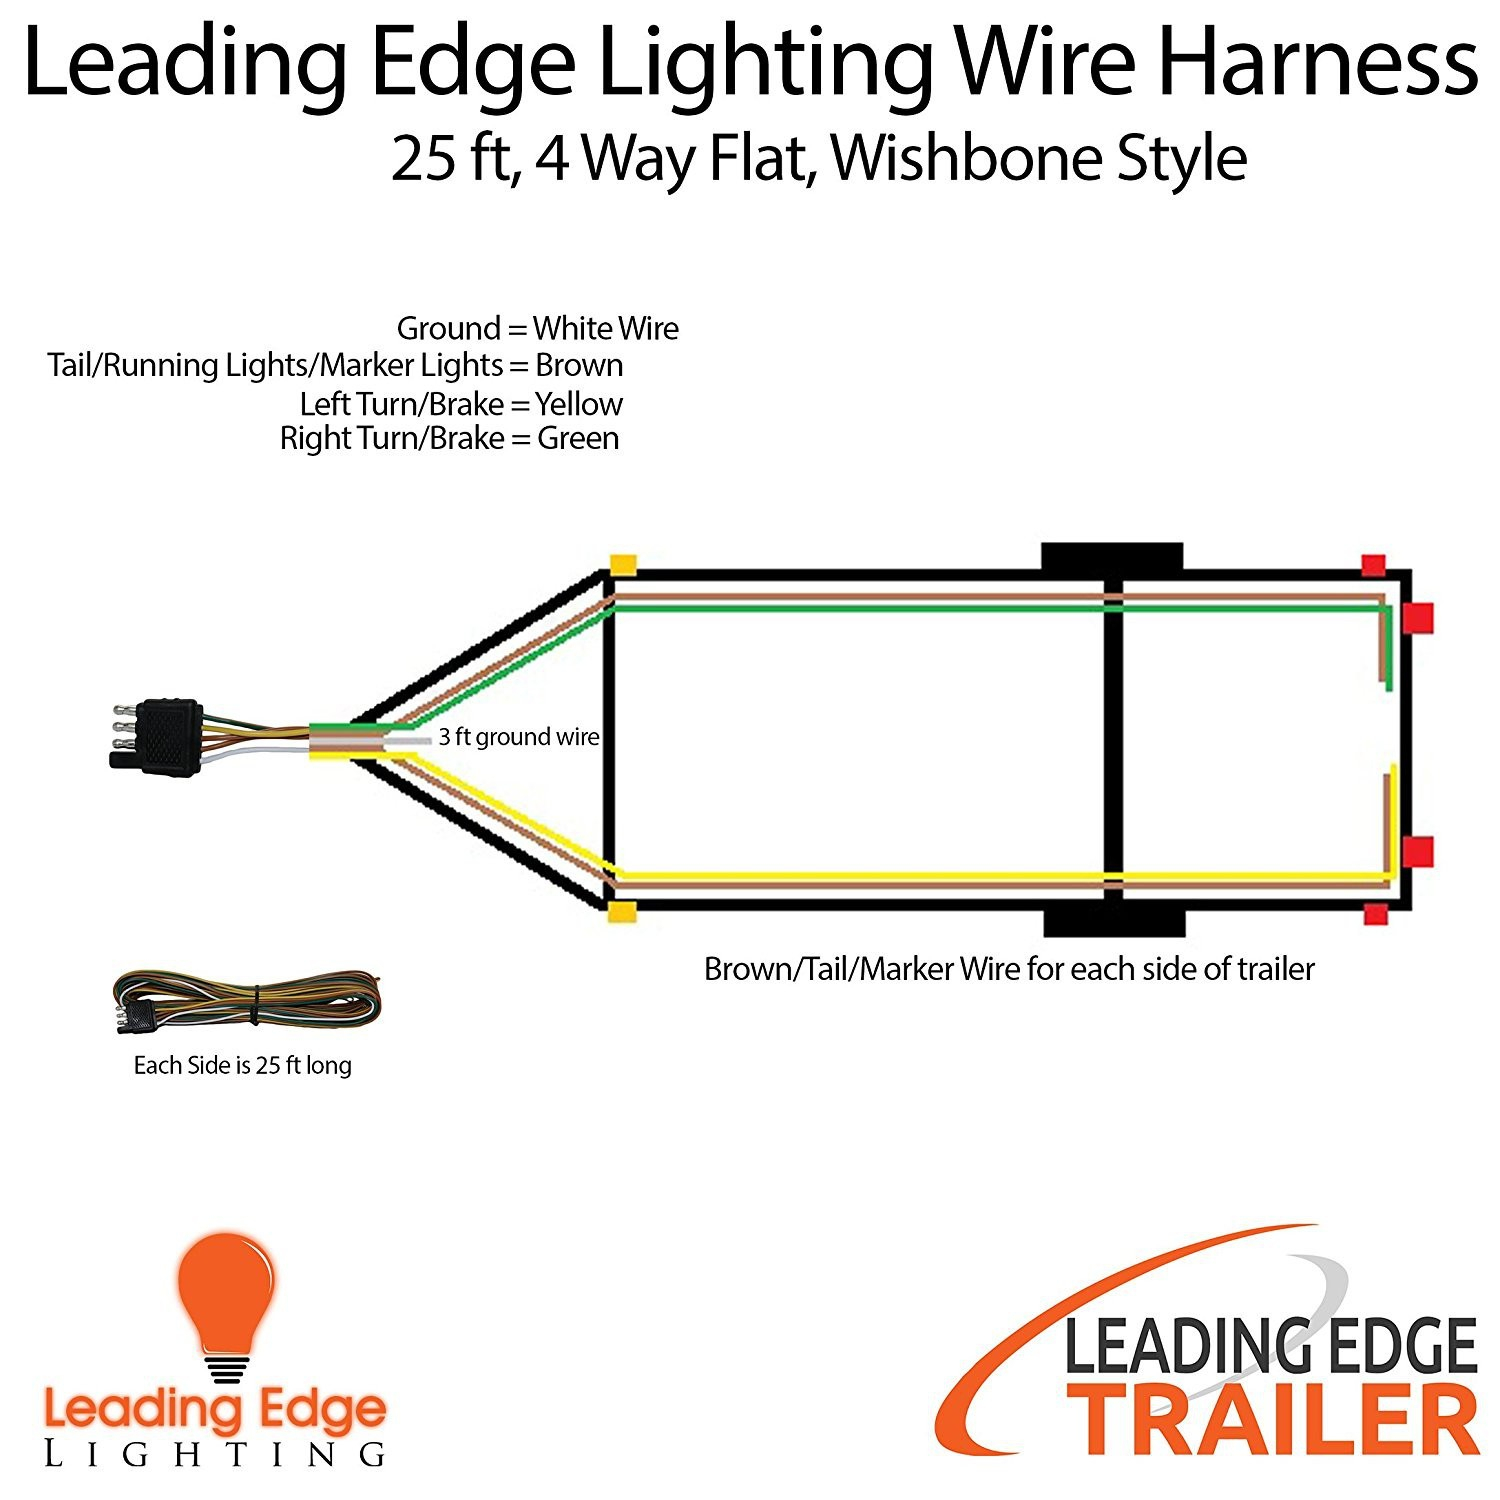 7 Prong Trailer Wiring Diagram - Allove - 7 Prong Wiring Diagram Trailer